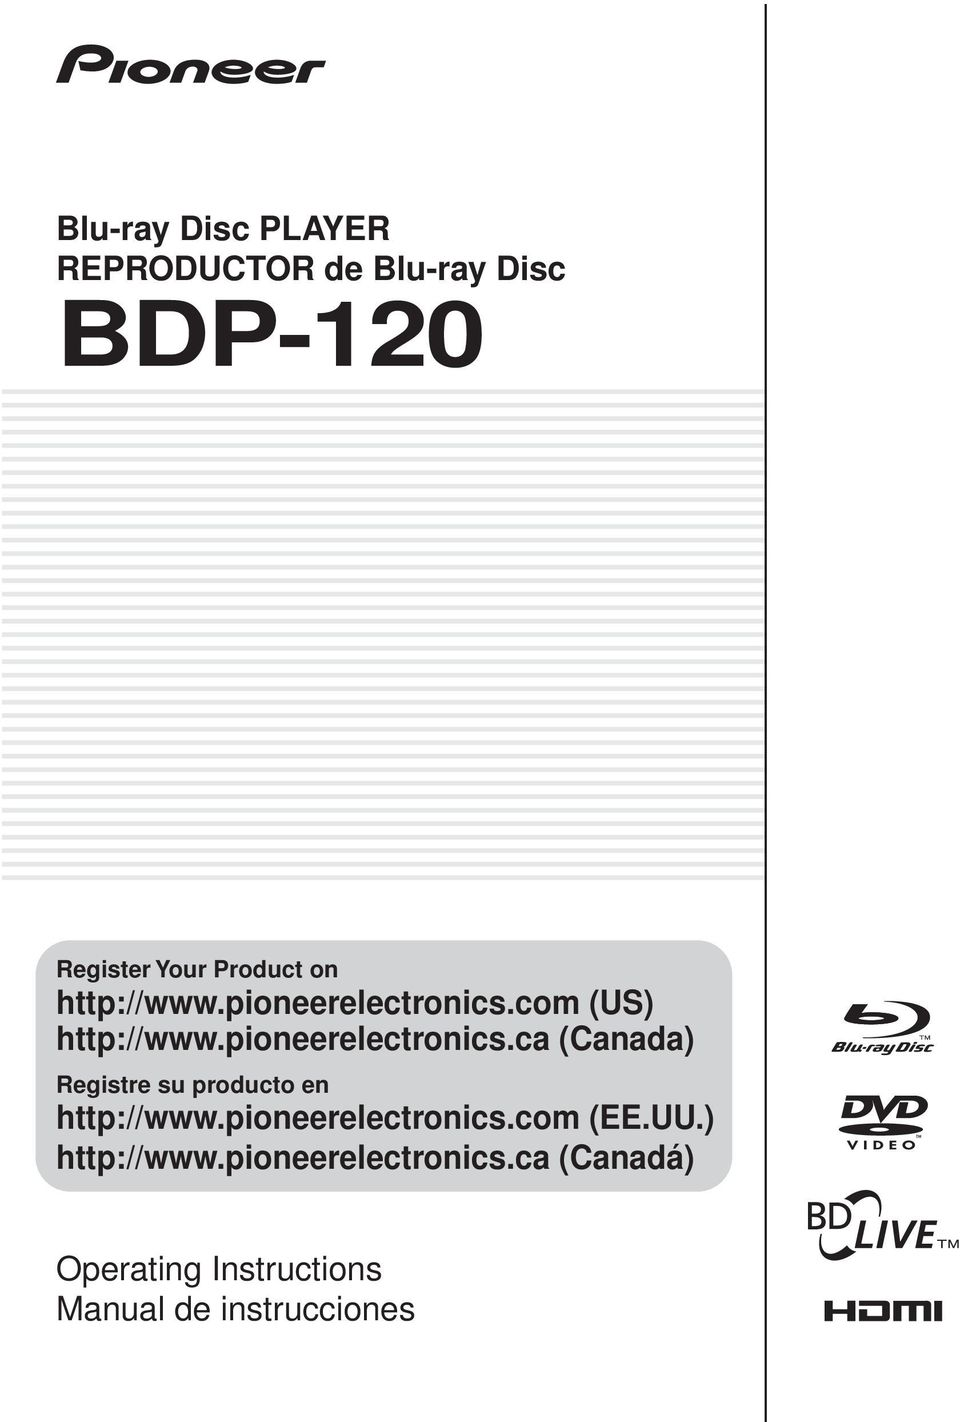 pioneerelectronics.com (EE.UU.) http://www.pioneerelectronics.ca (Canadá) Operating Instructions Manual de instrucciones